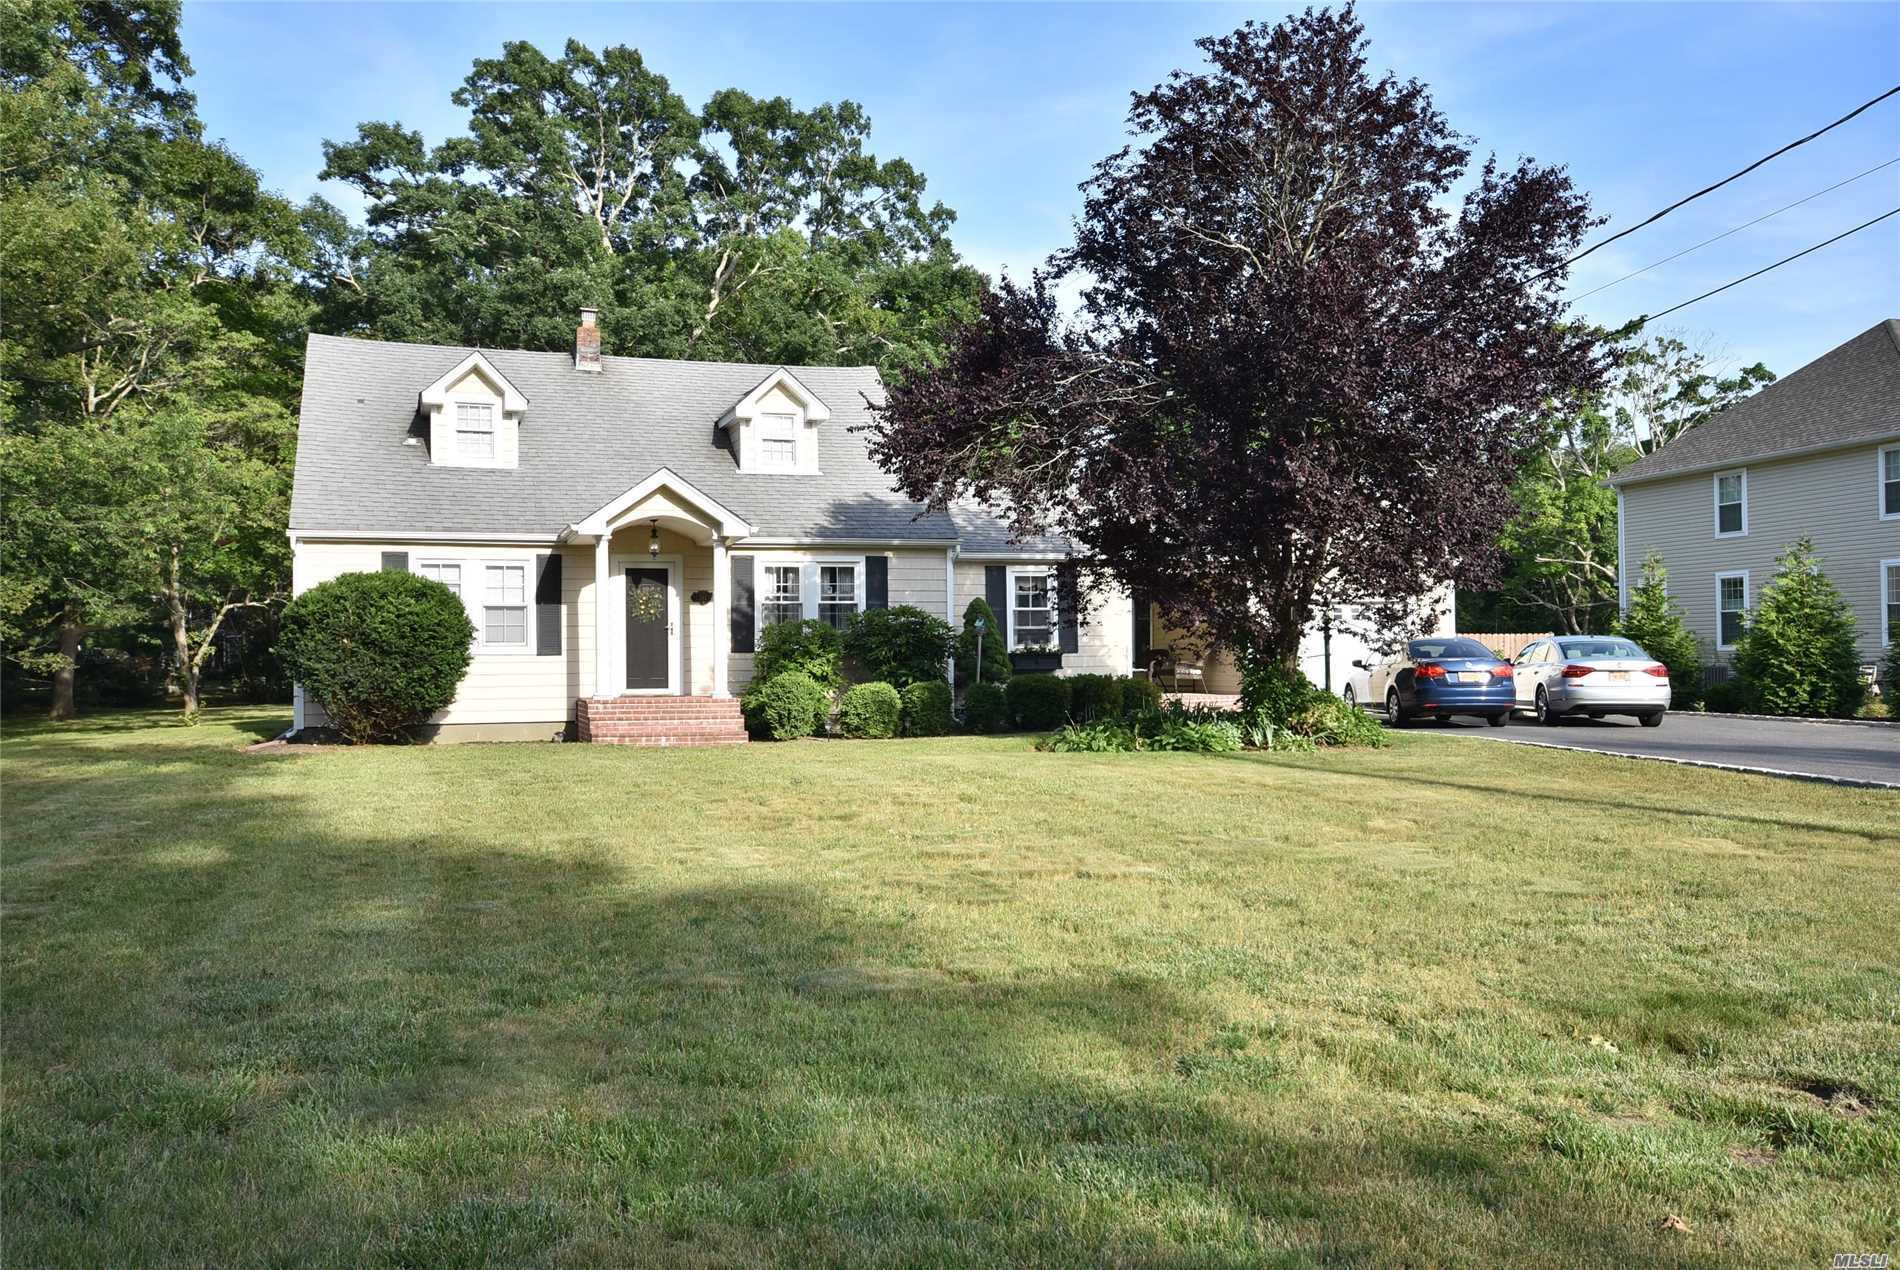 Spacious Cape Style Home On Large Park Like Property With Detached Two Car Garage And Attached One Car Garage. Taxes After Nys Star Rebate Are $11, 294.38.